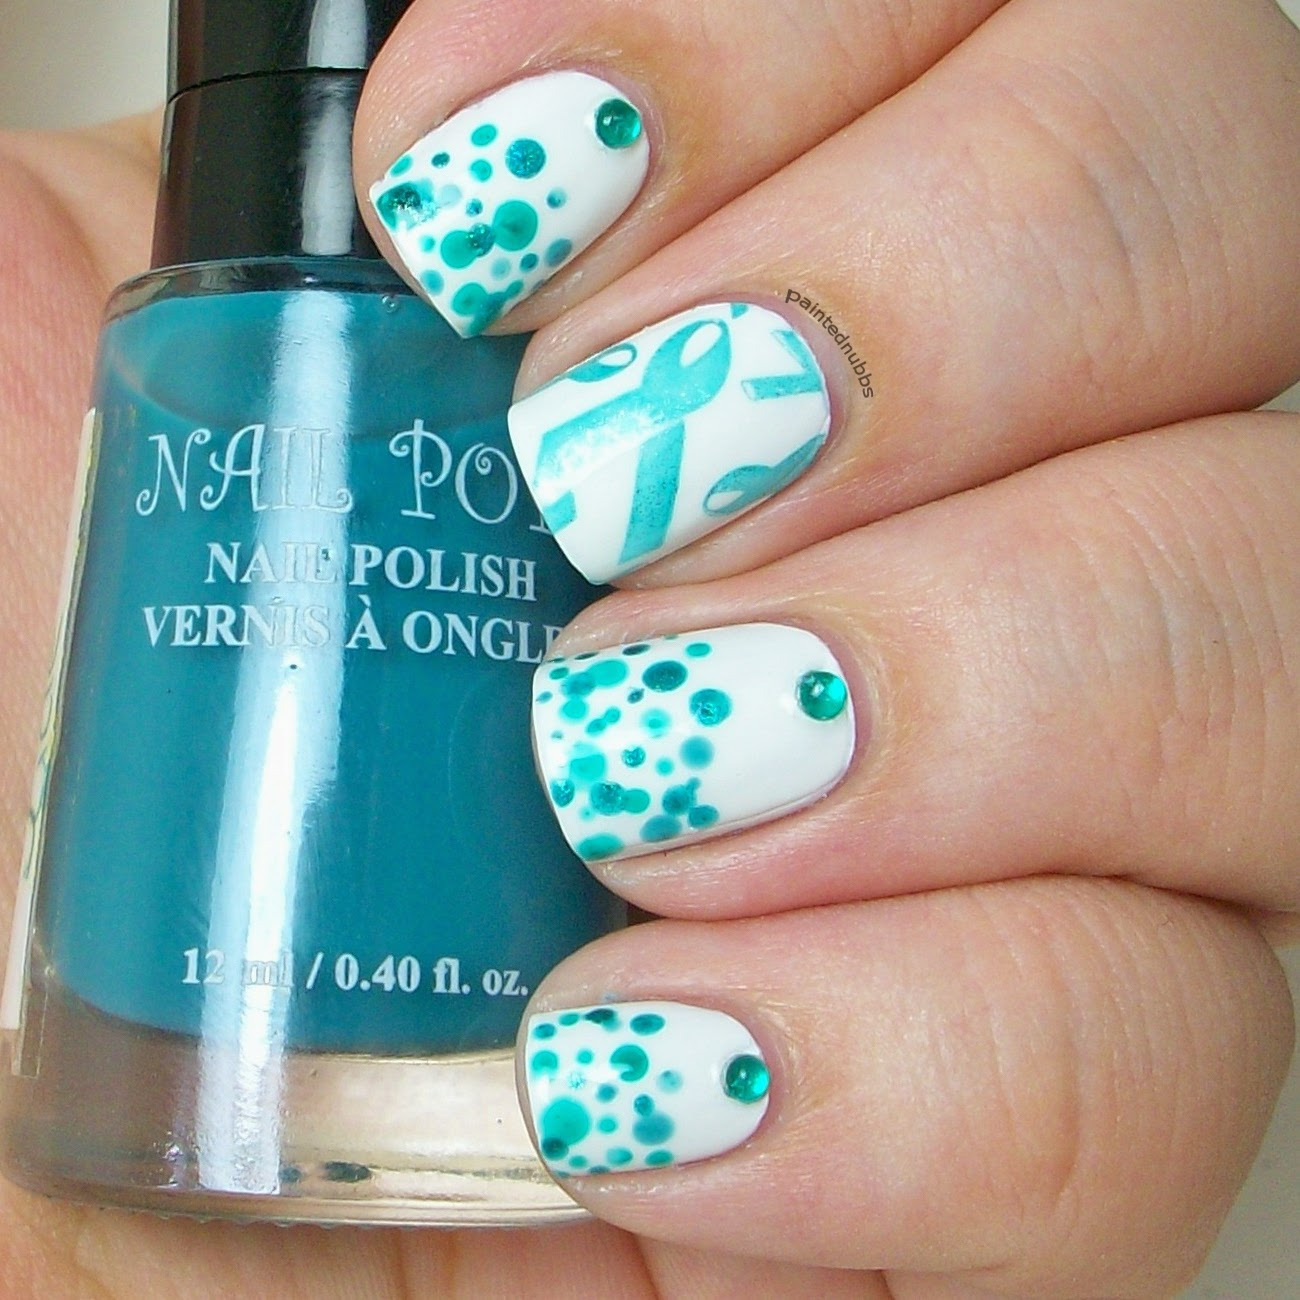 I Tried To Do A Polka Dot Grant But It Needs Some Work Have No Clue The Easiest Forms Of Nail Art Always Seem Be Hardest For Me